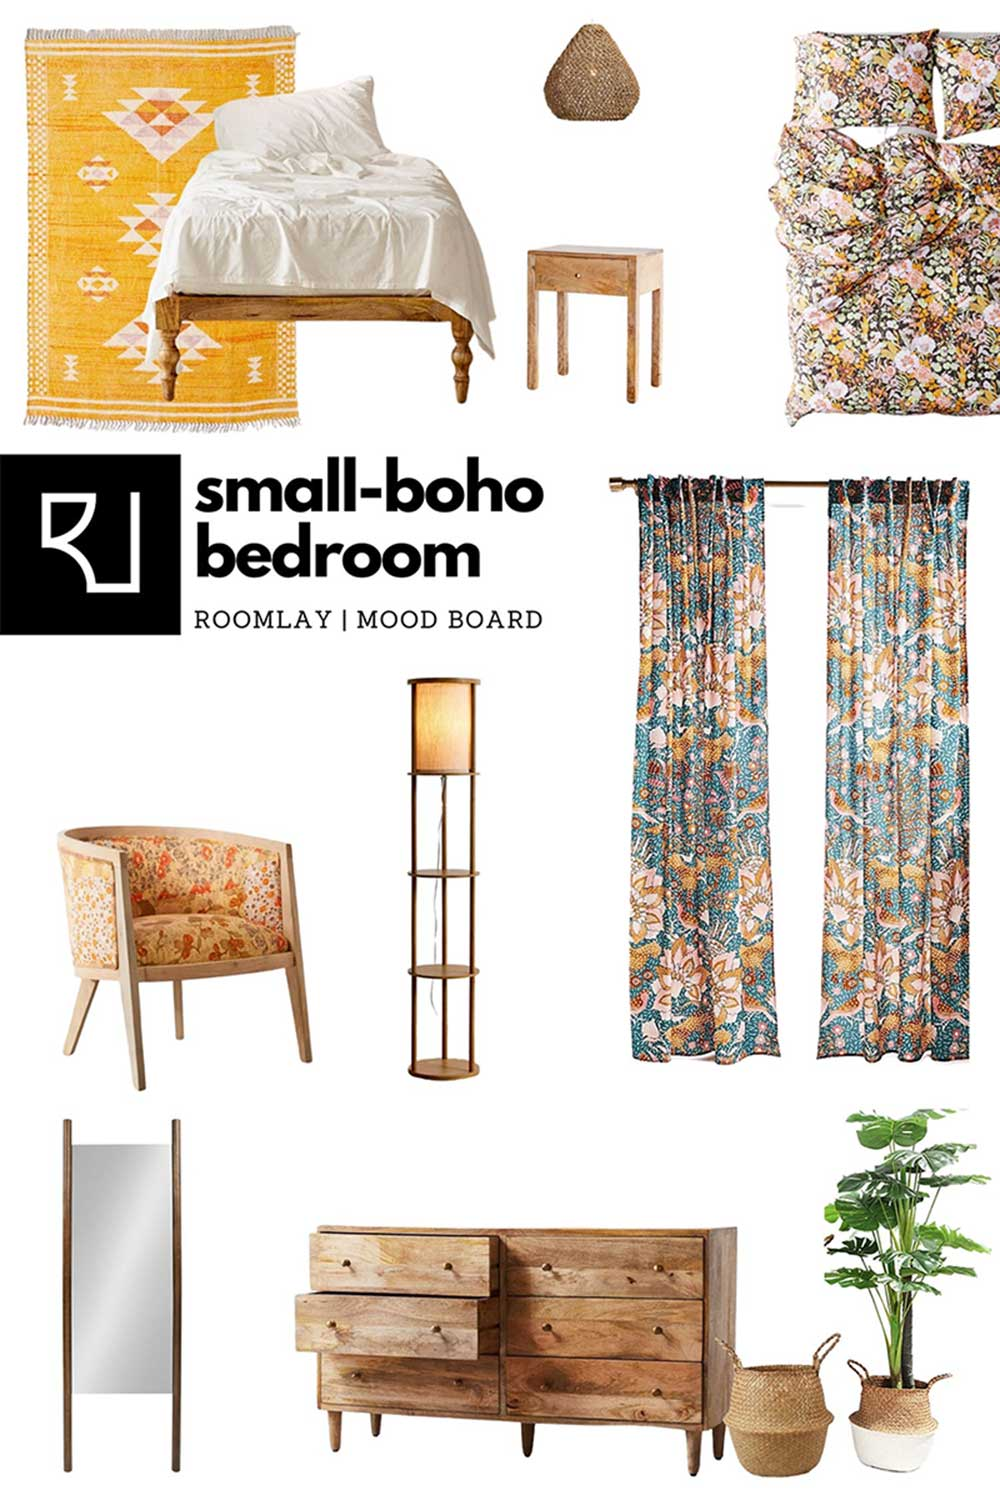 small boho bedroom furniture mood board with layout